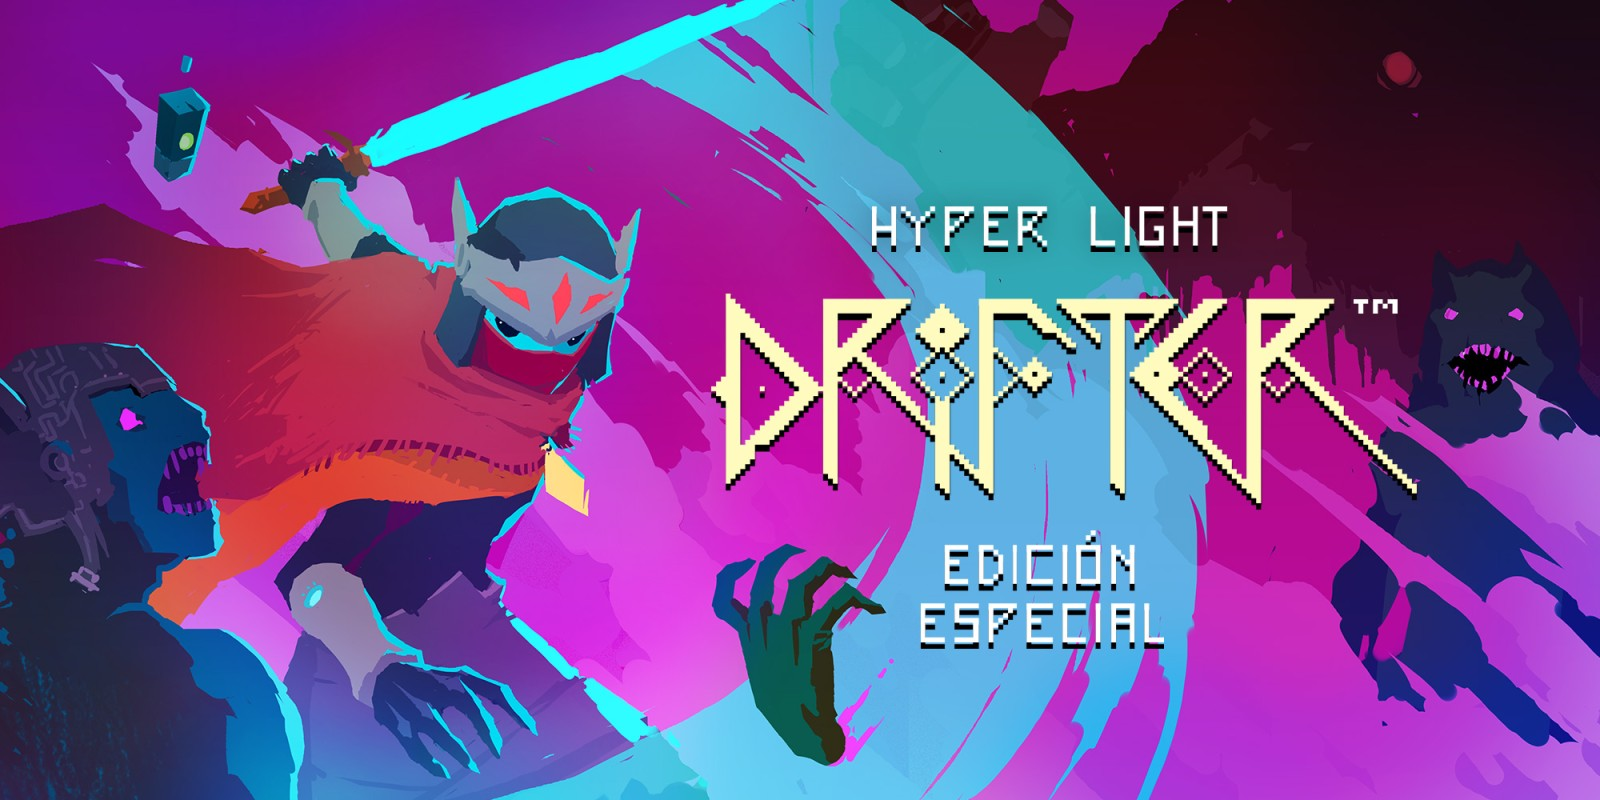 Hyper Light Drifter Edicion Especial Programas Descargables